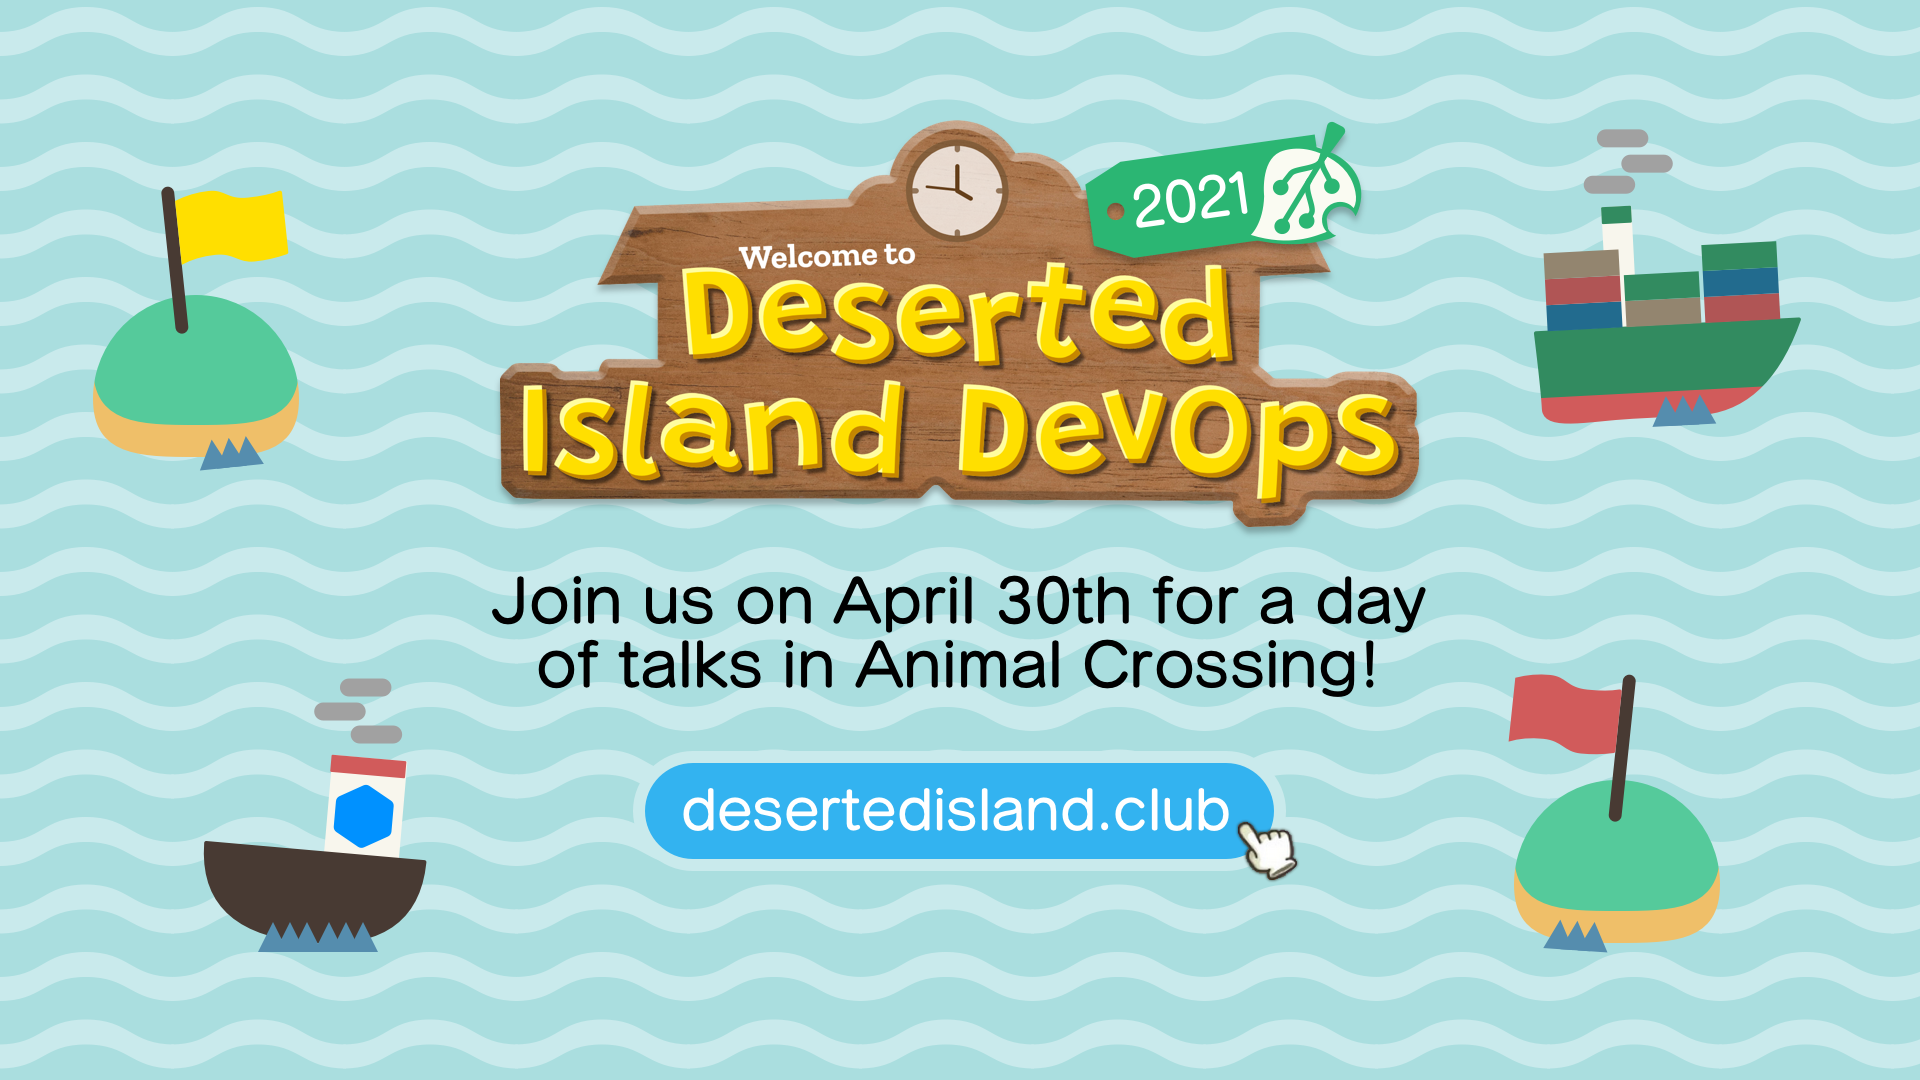 Join us April 30th for a day of DevOps Talks in Animal Crossing!